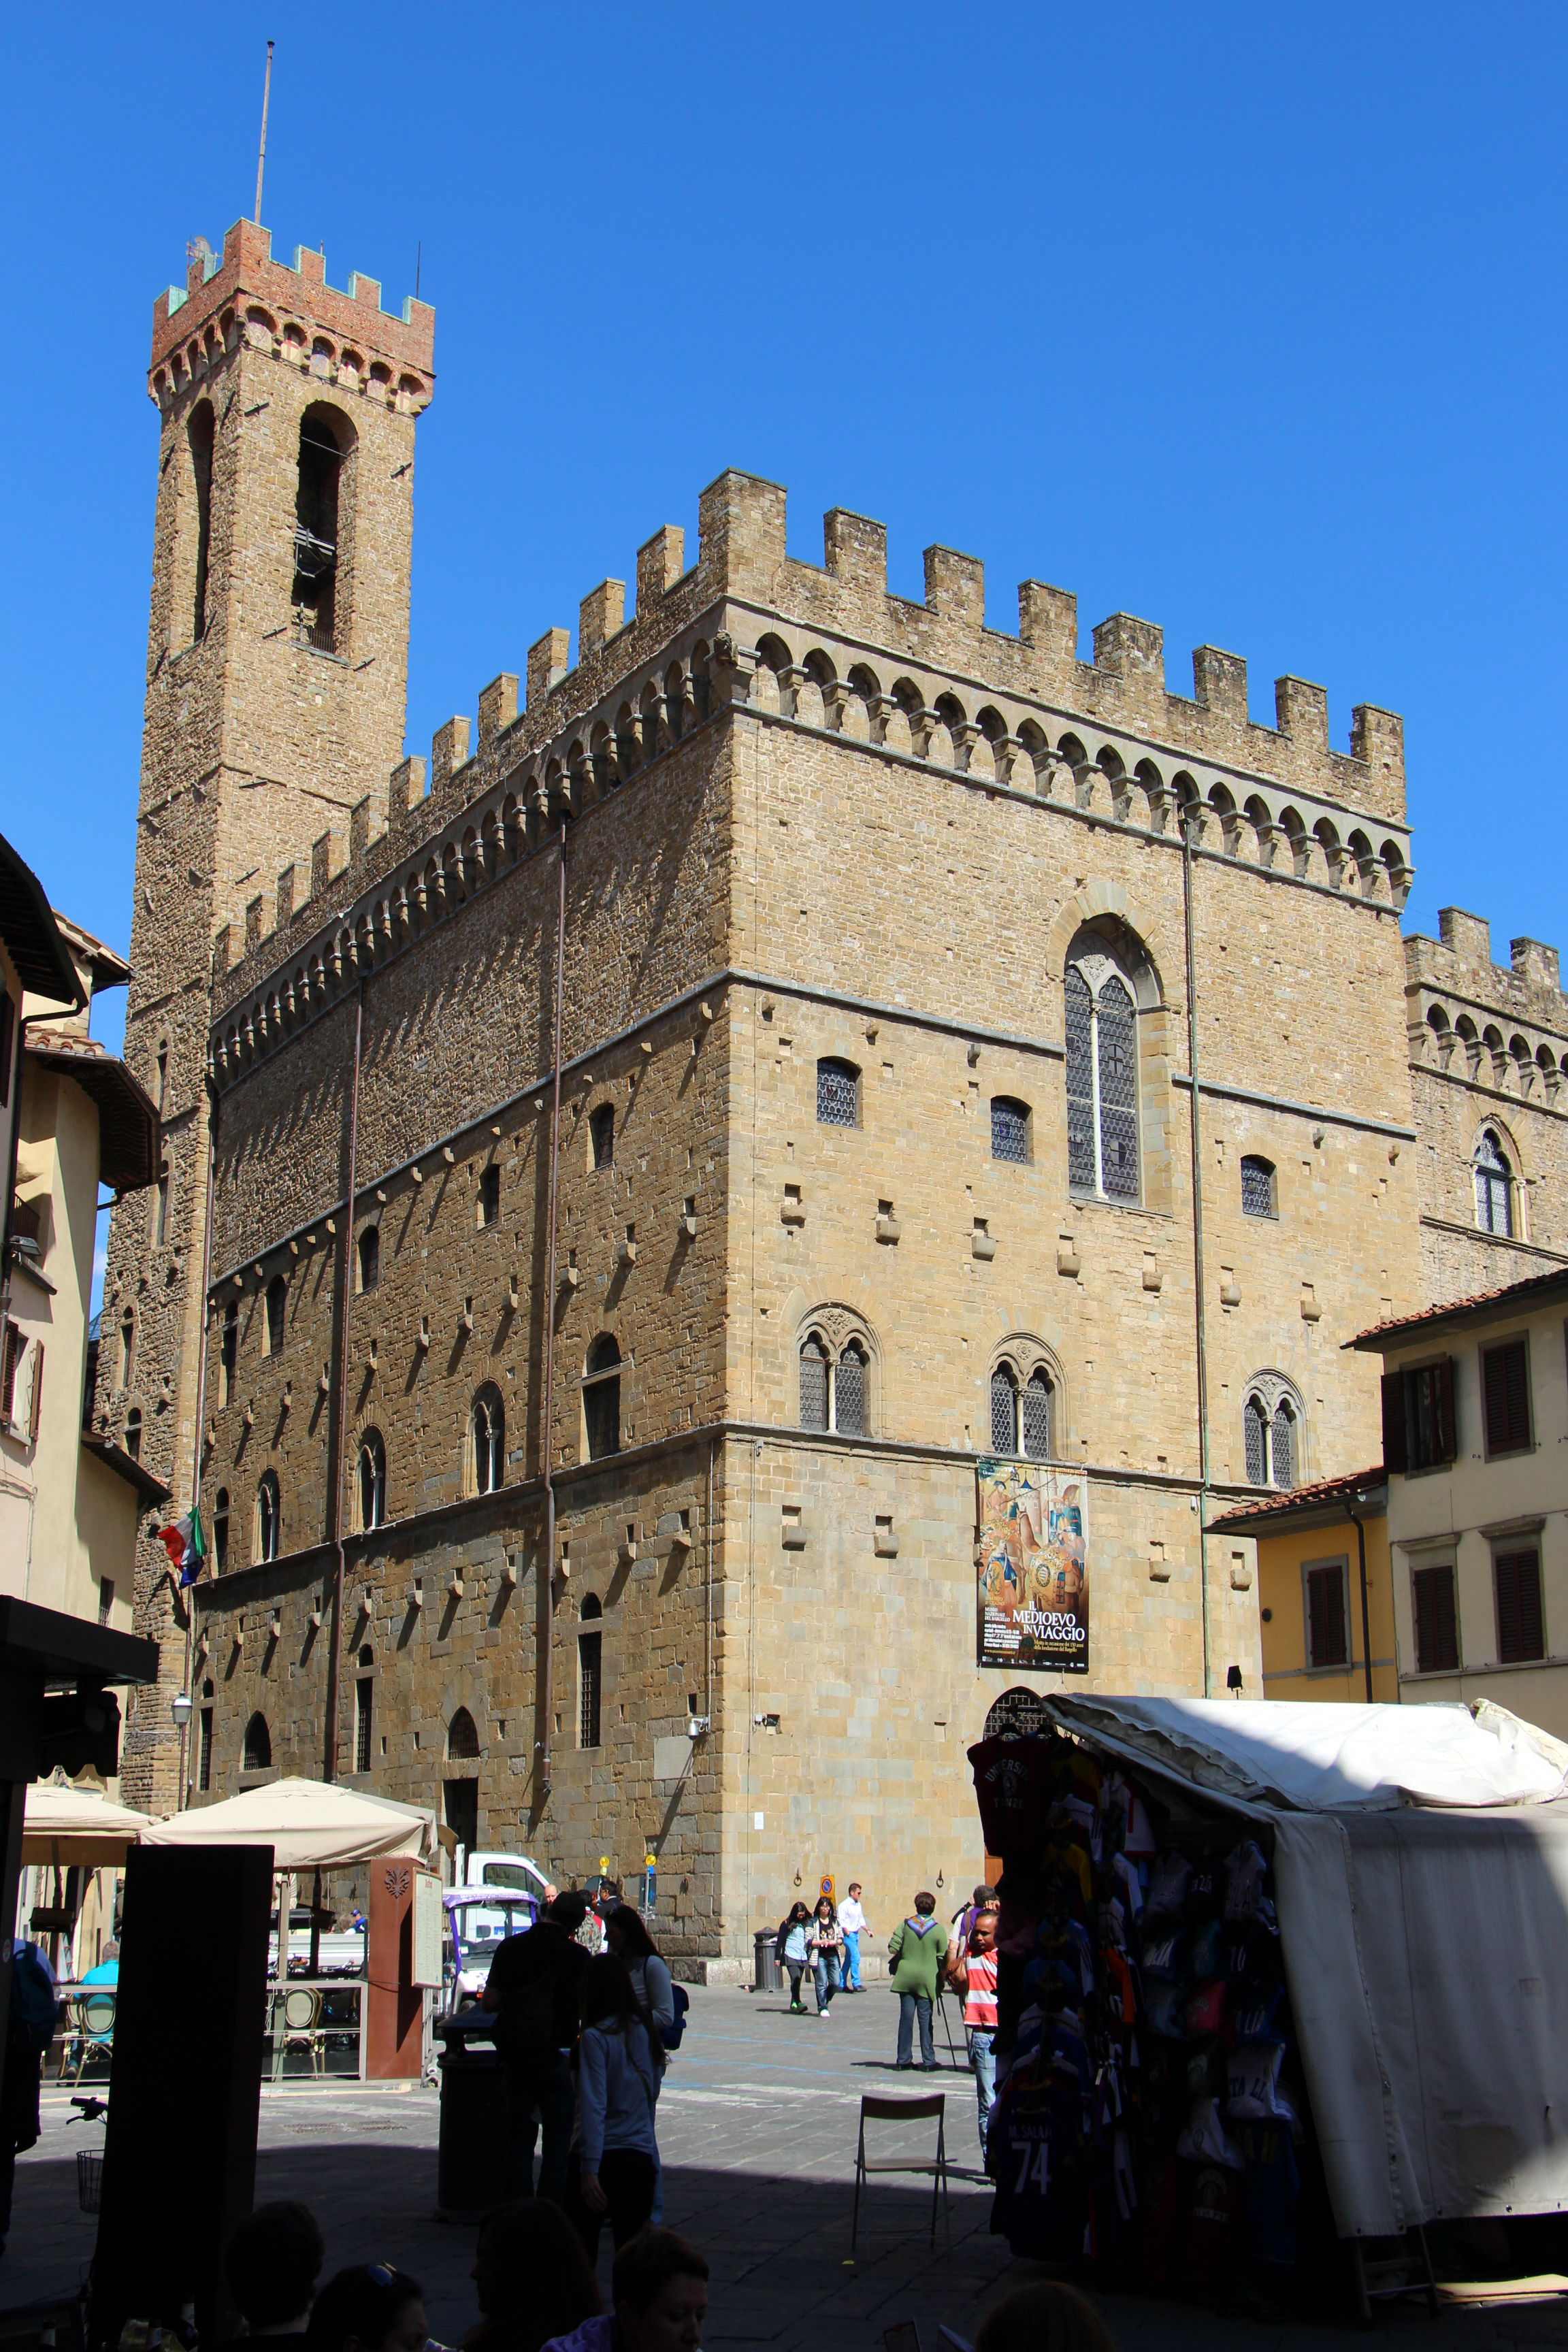 Museo nazionale del bargello wikiwand for Firenze medievale